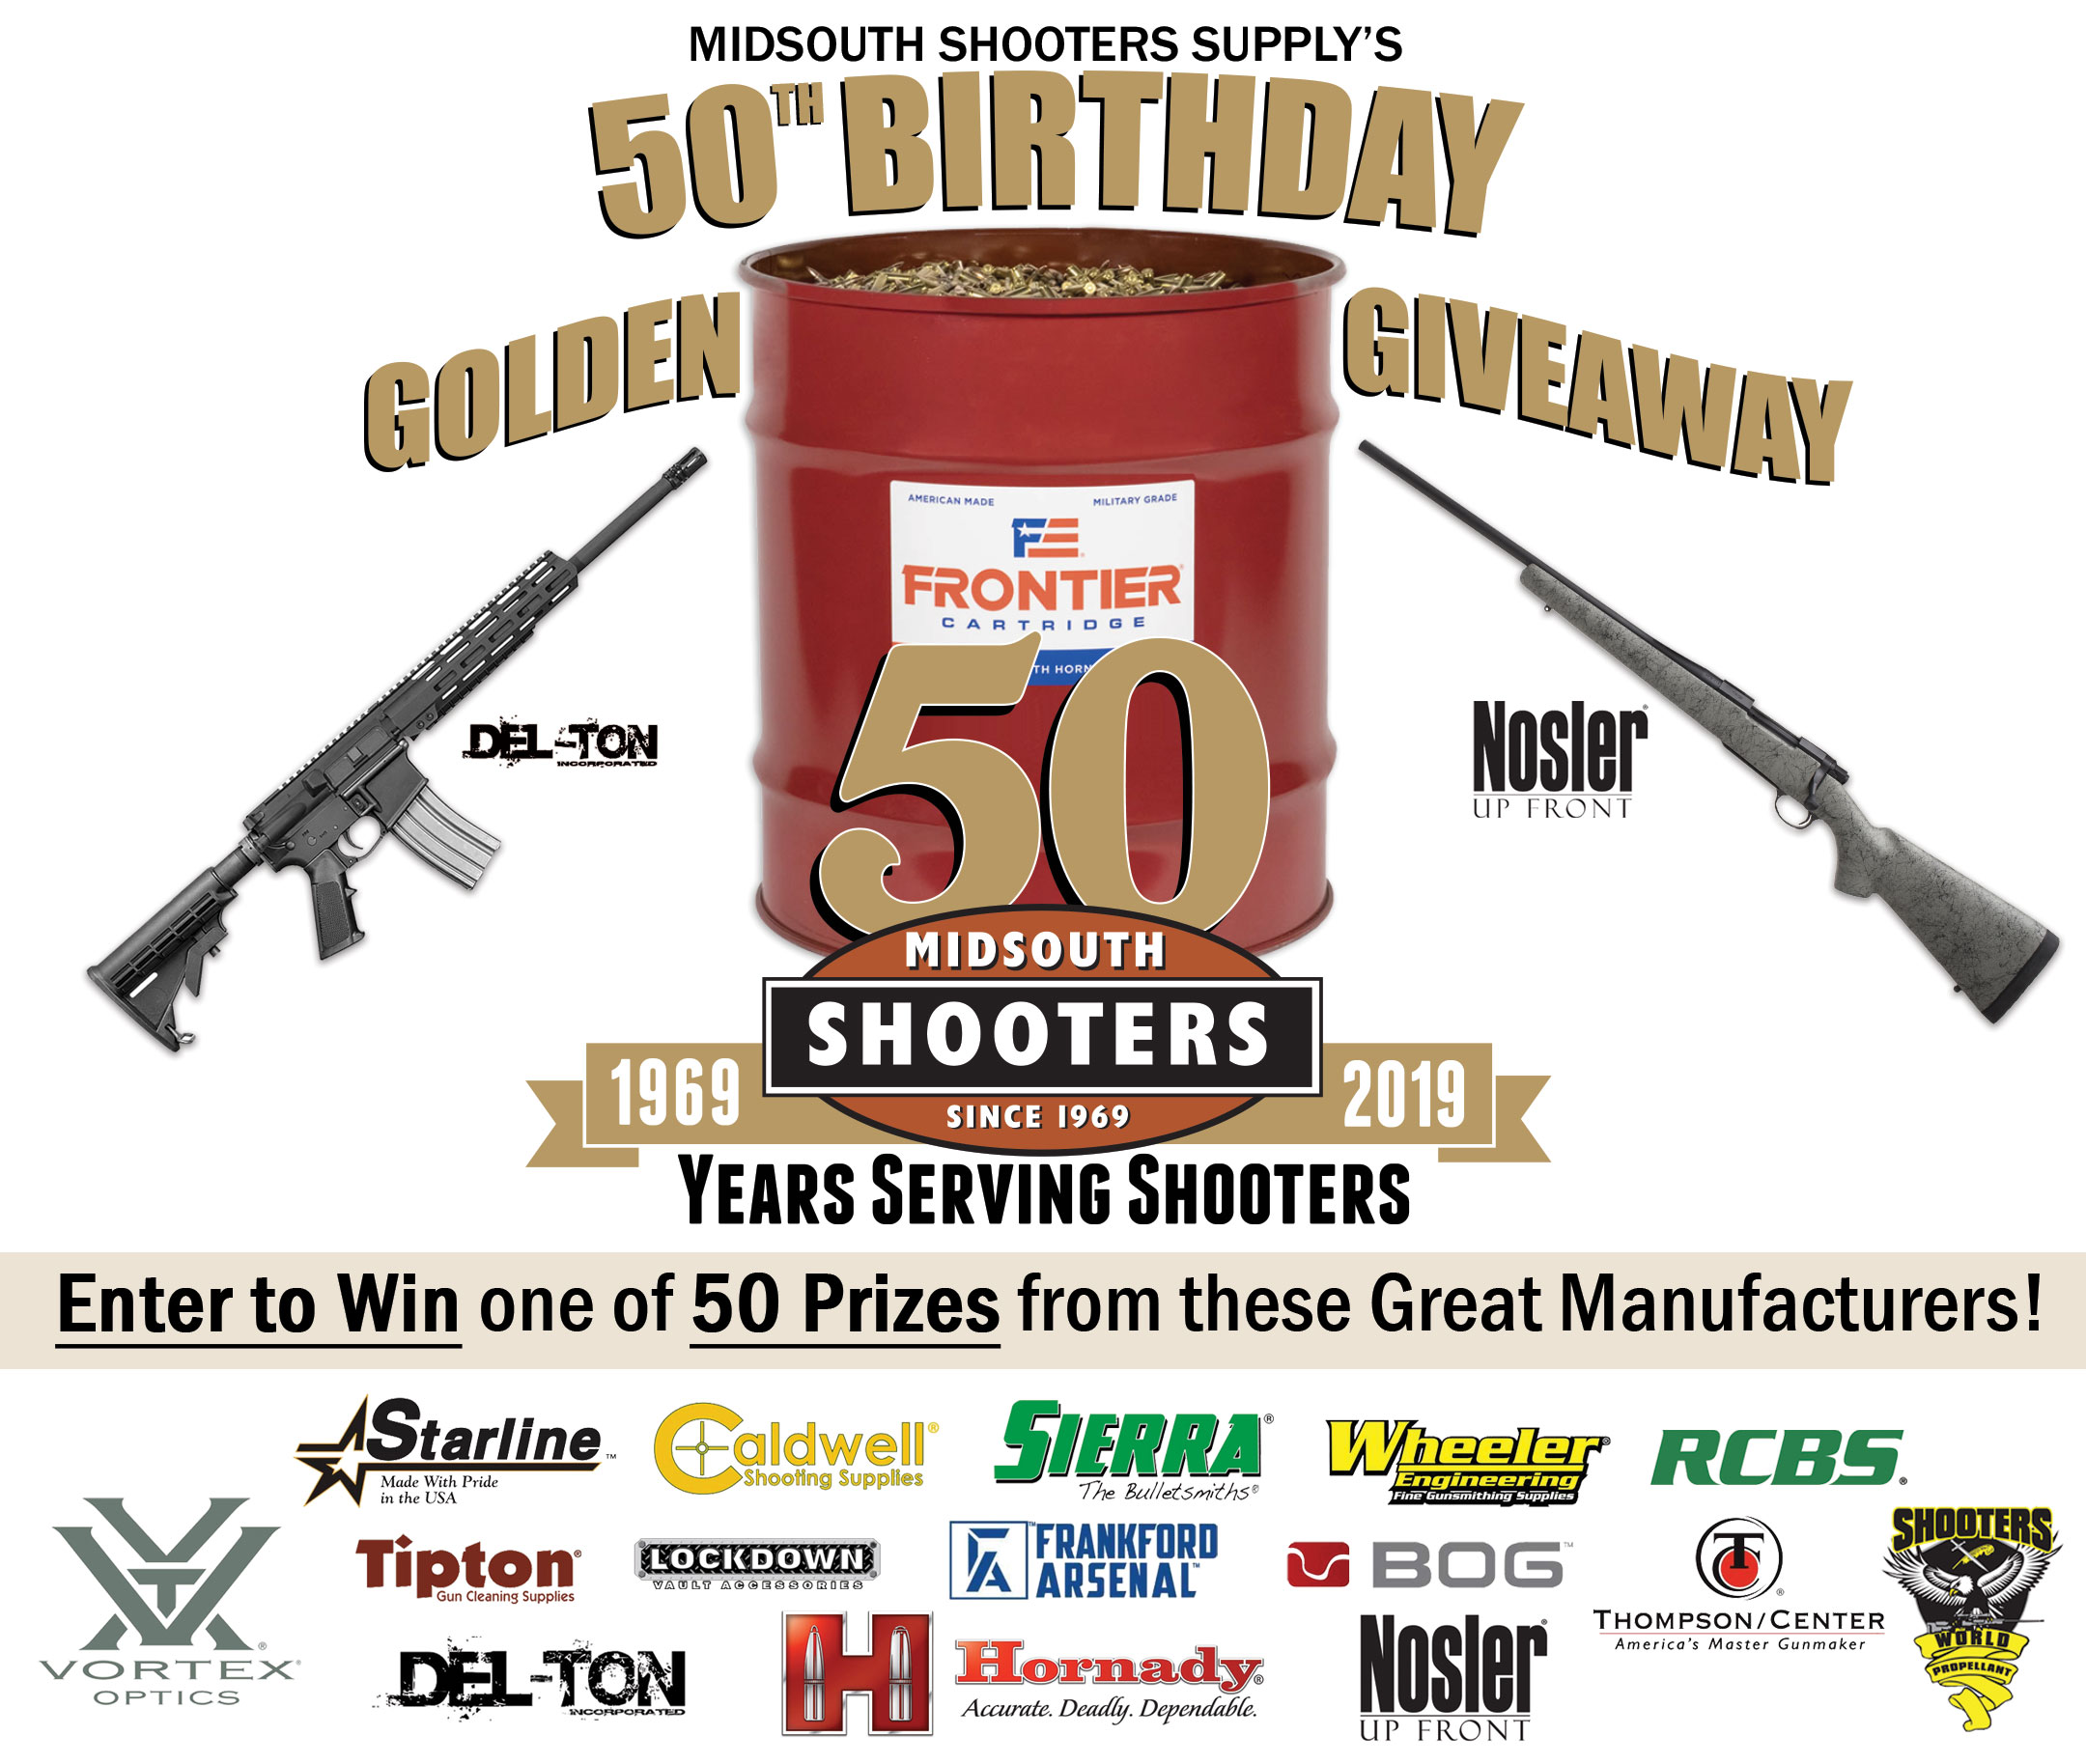 Midsouth's 50th Birthday Golden Giveaway and Sale